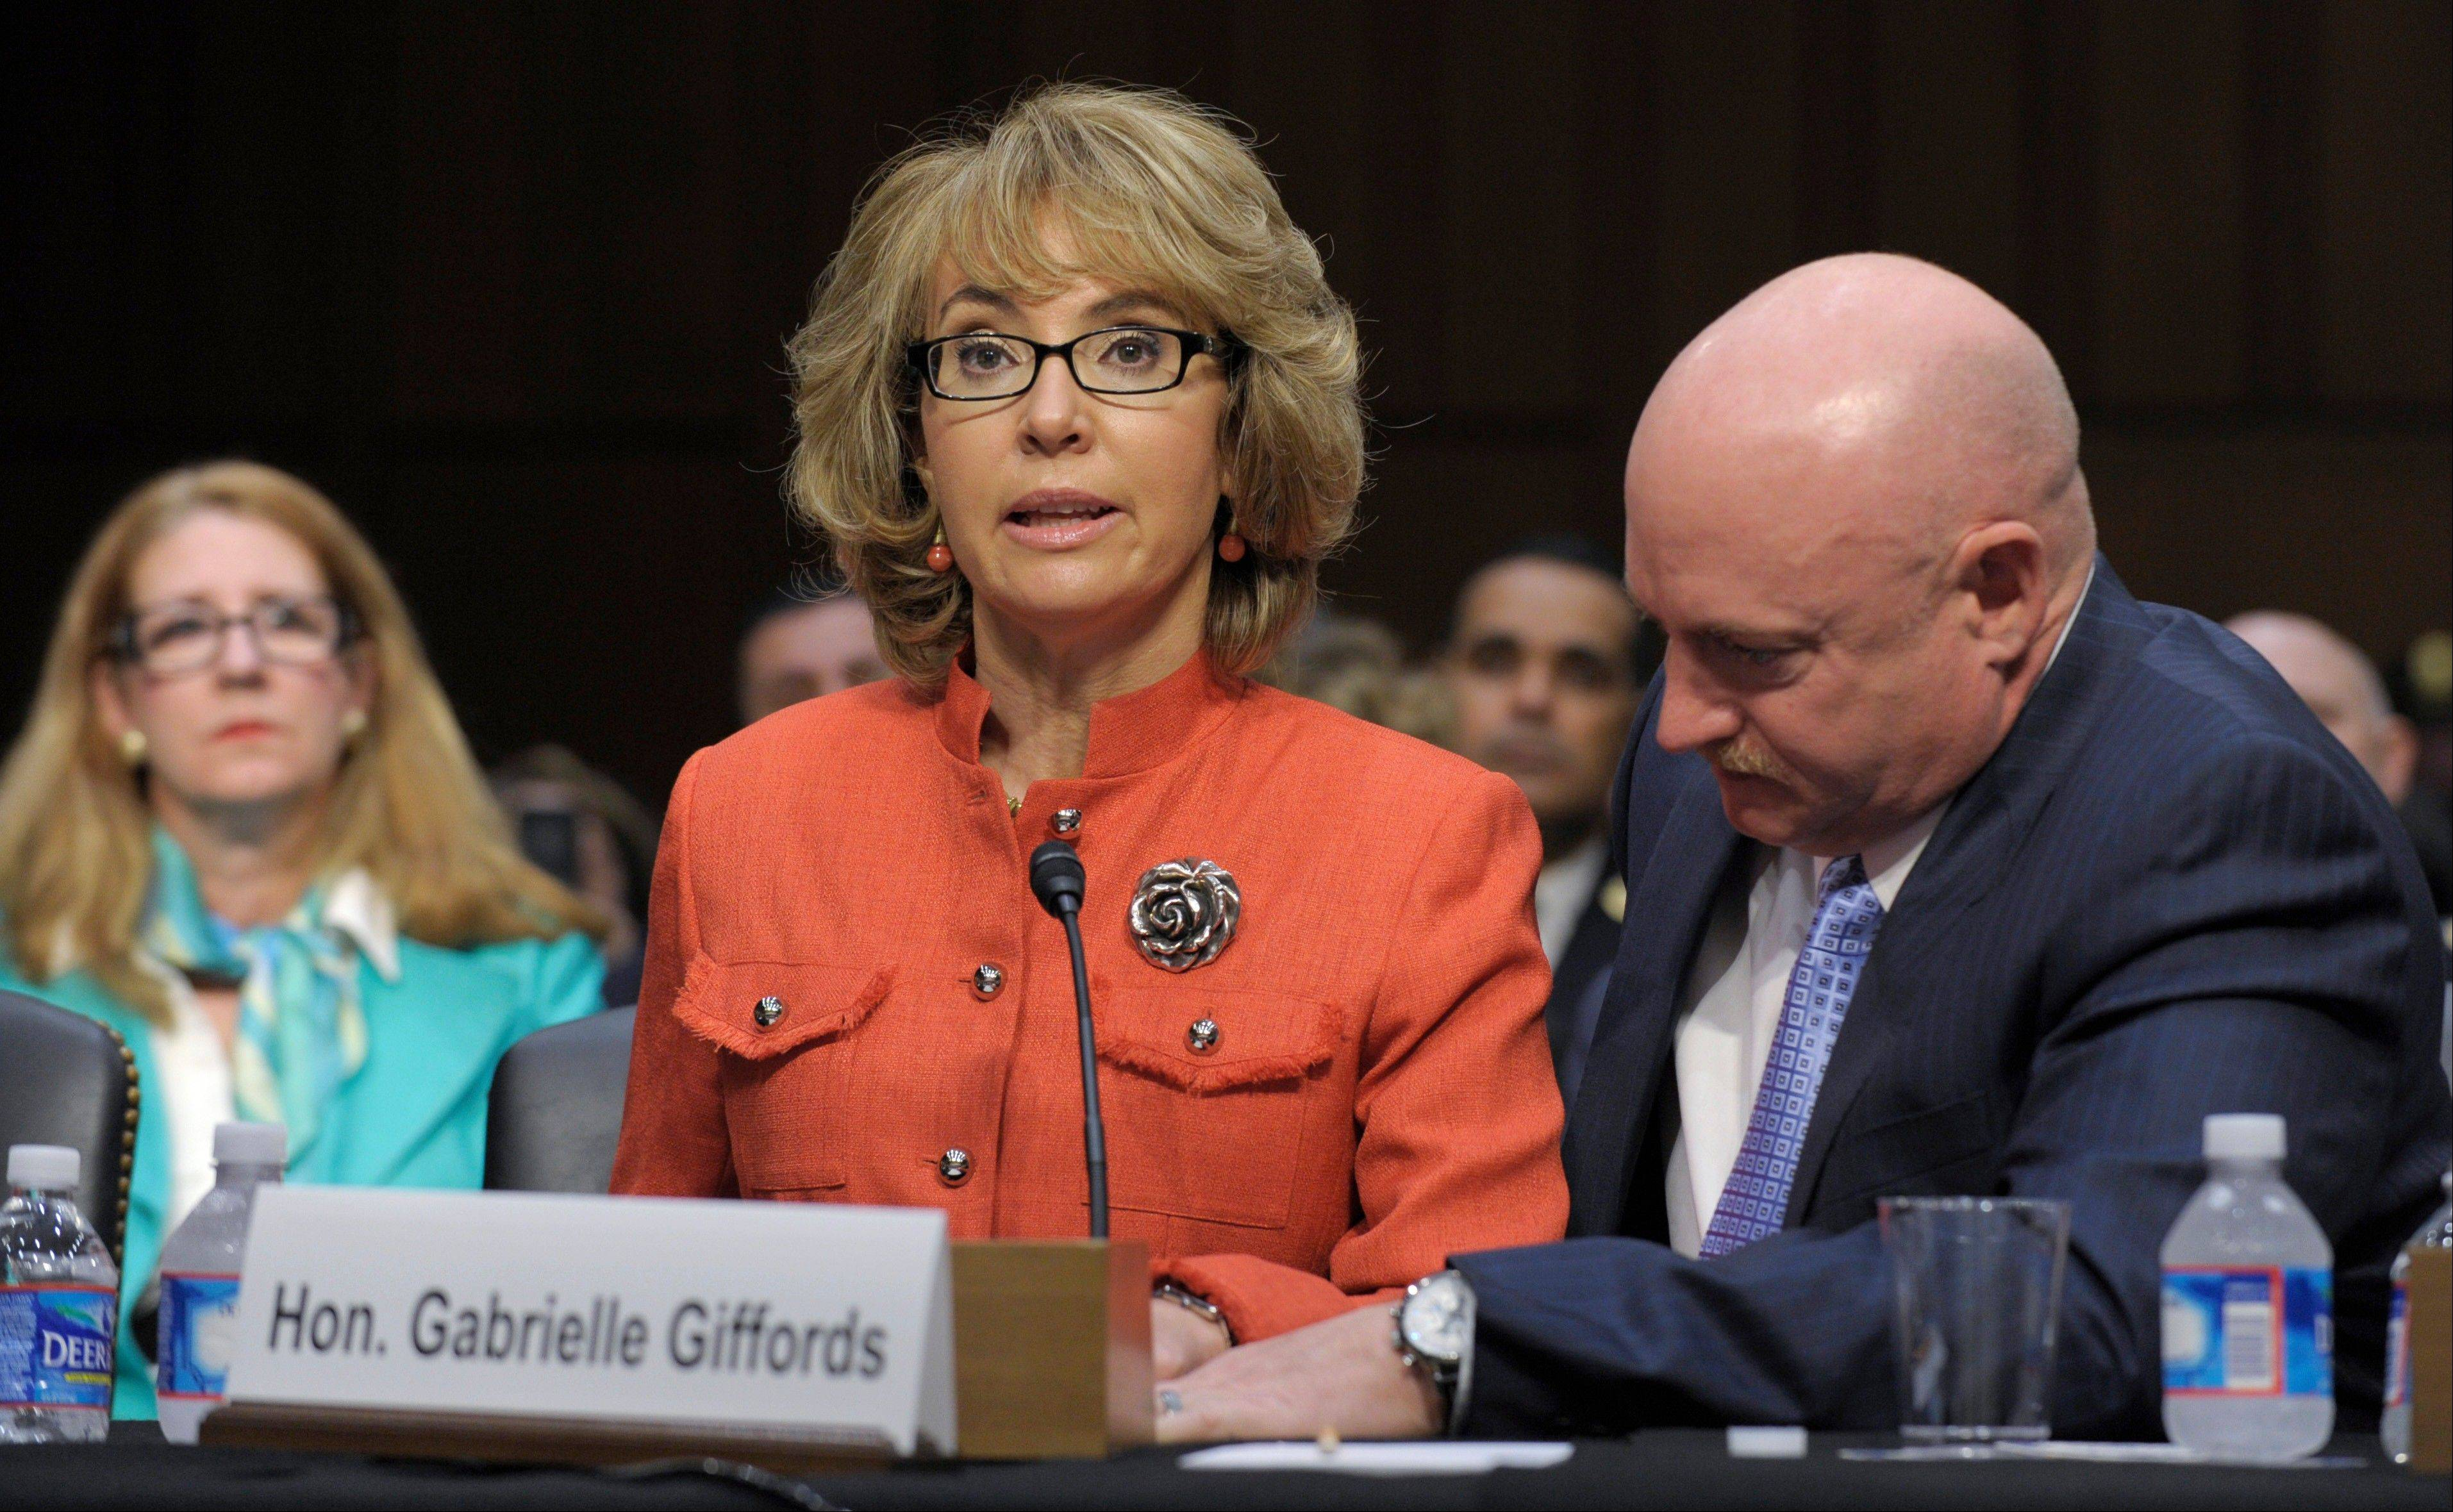 Former Arizona Rep. Gabrielle Giffords, who was seriously injured in the mass shooting that killed six people in Tucson, Ariz., two years ago, sits with her husband, Mark Kelly, Wednesday and speaks before the Senate Judiciary Committee hearing on gun violence.